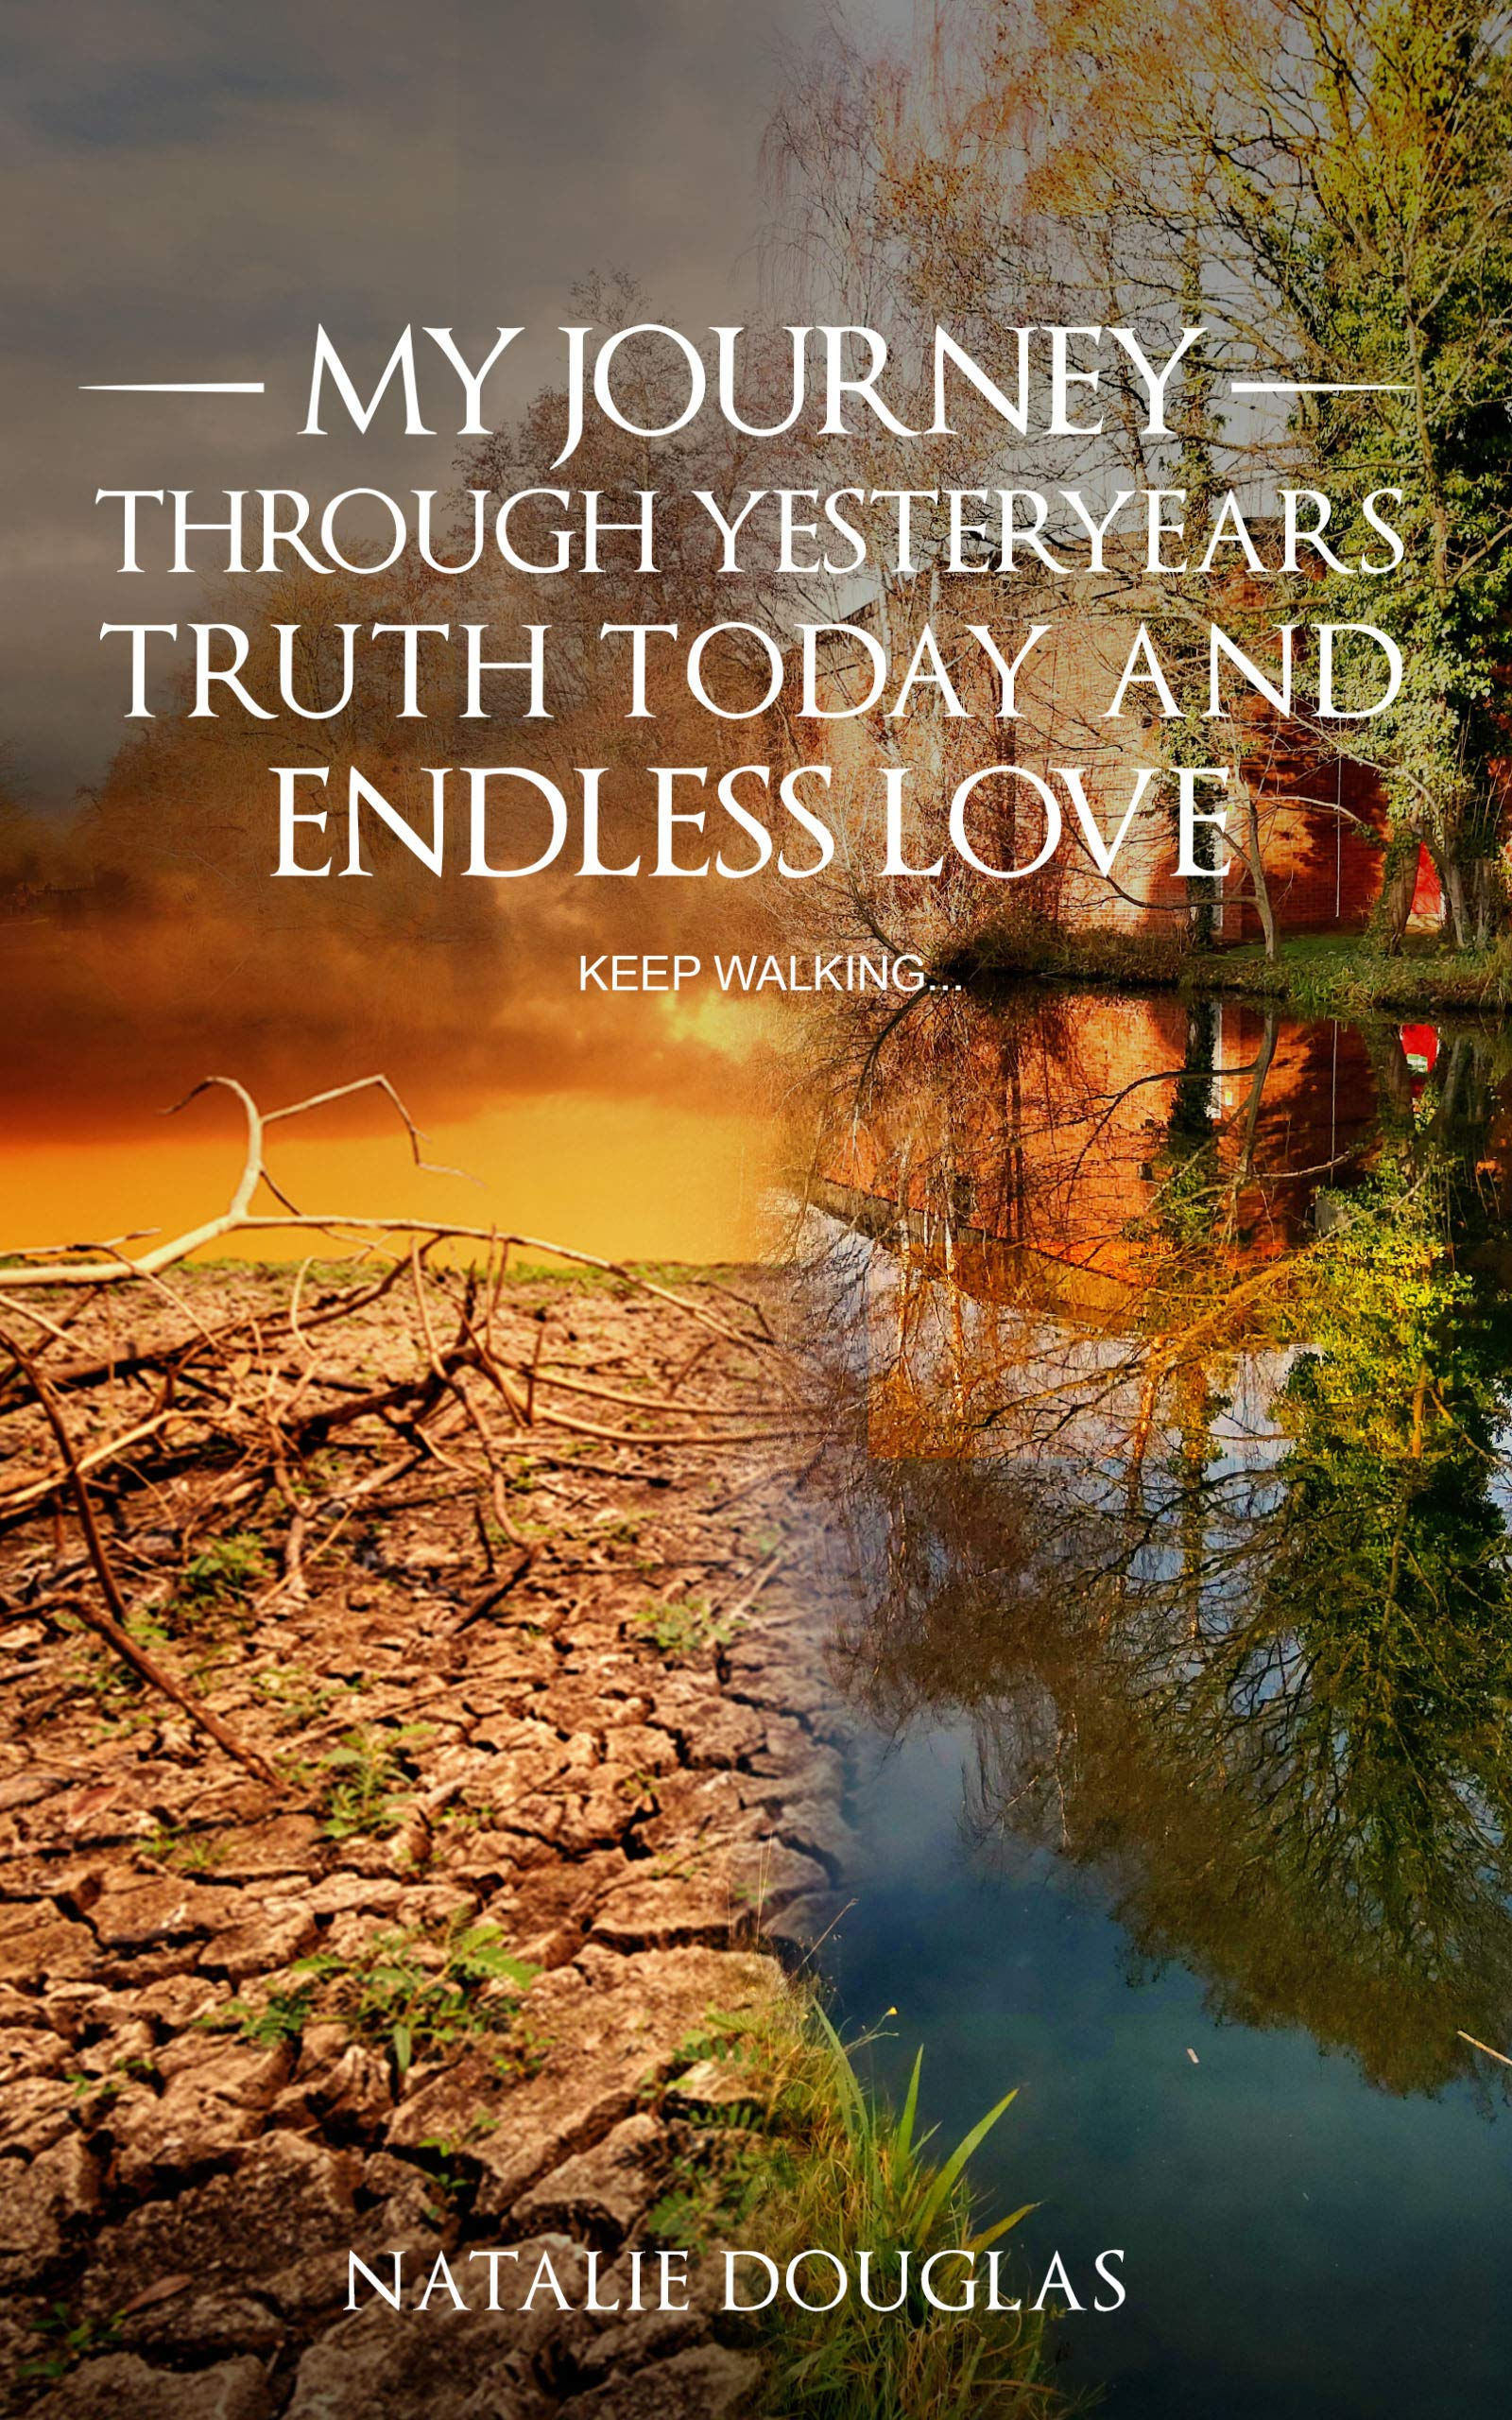 MY JOURNEY THROUGH YESTERYEARS TRUTH TODAY AND ENDLESS LOVE: KEEP WALKING